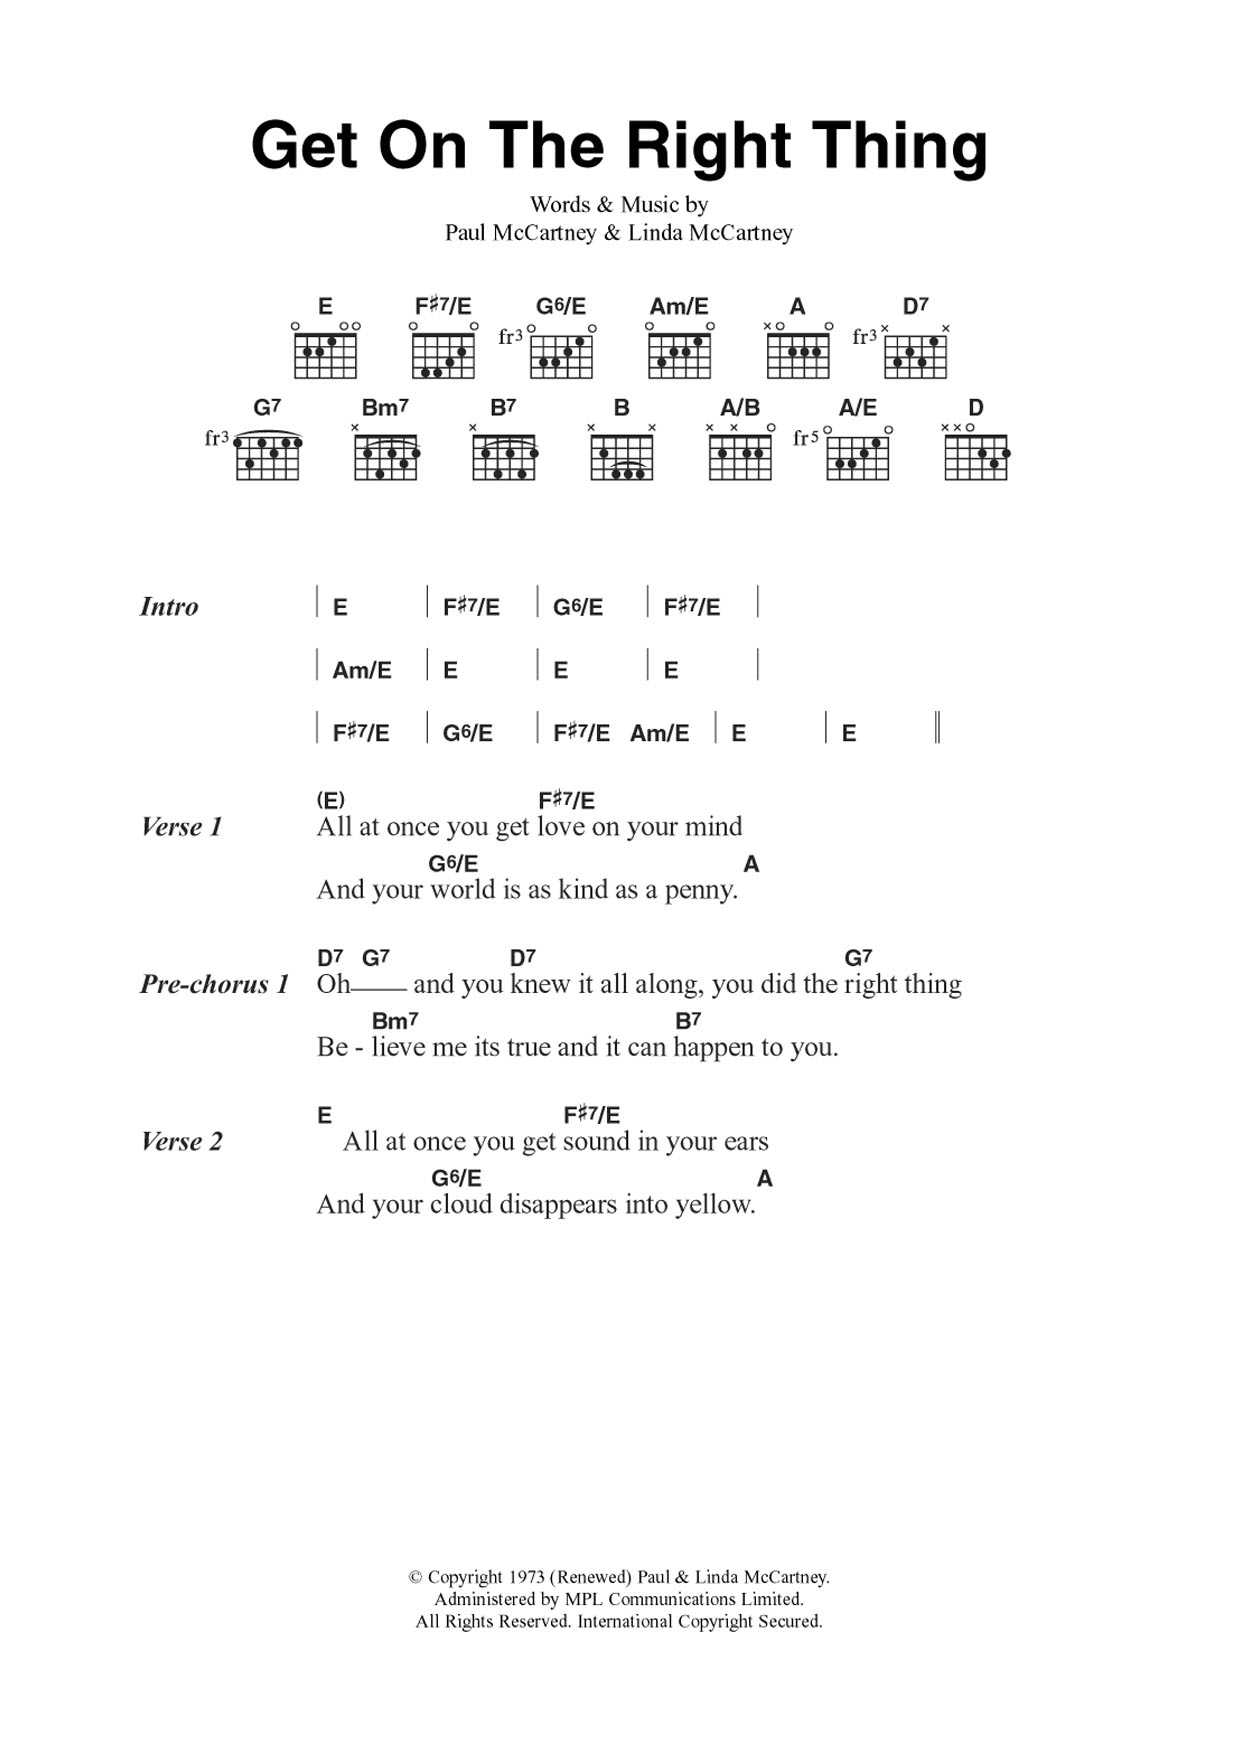 Get On The Right Thing Sheet Music